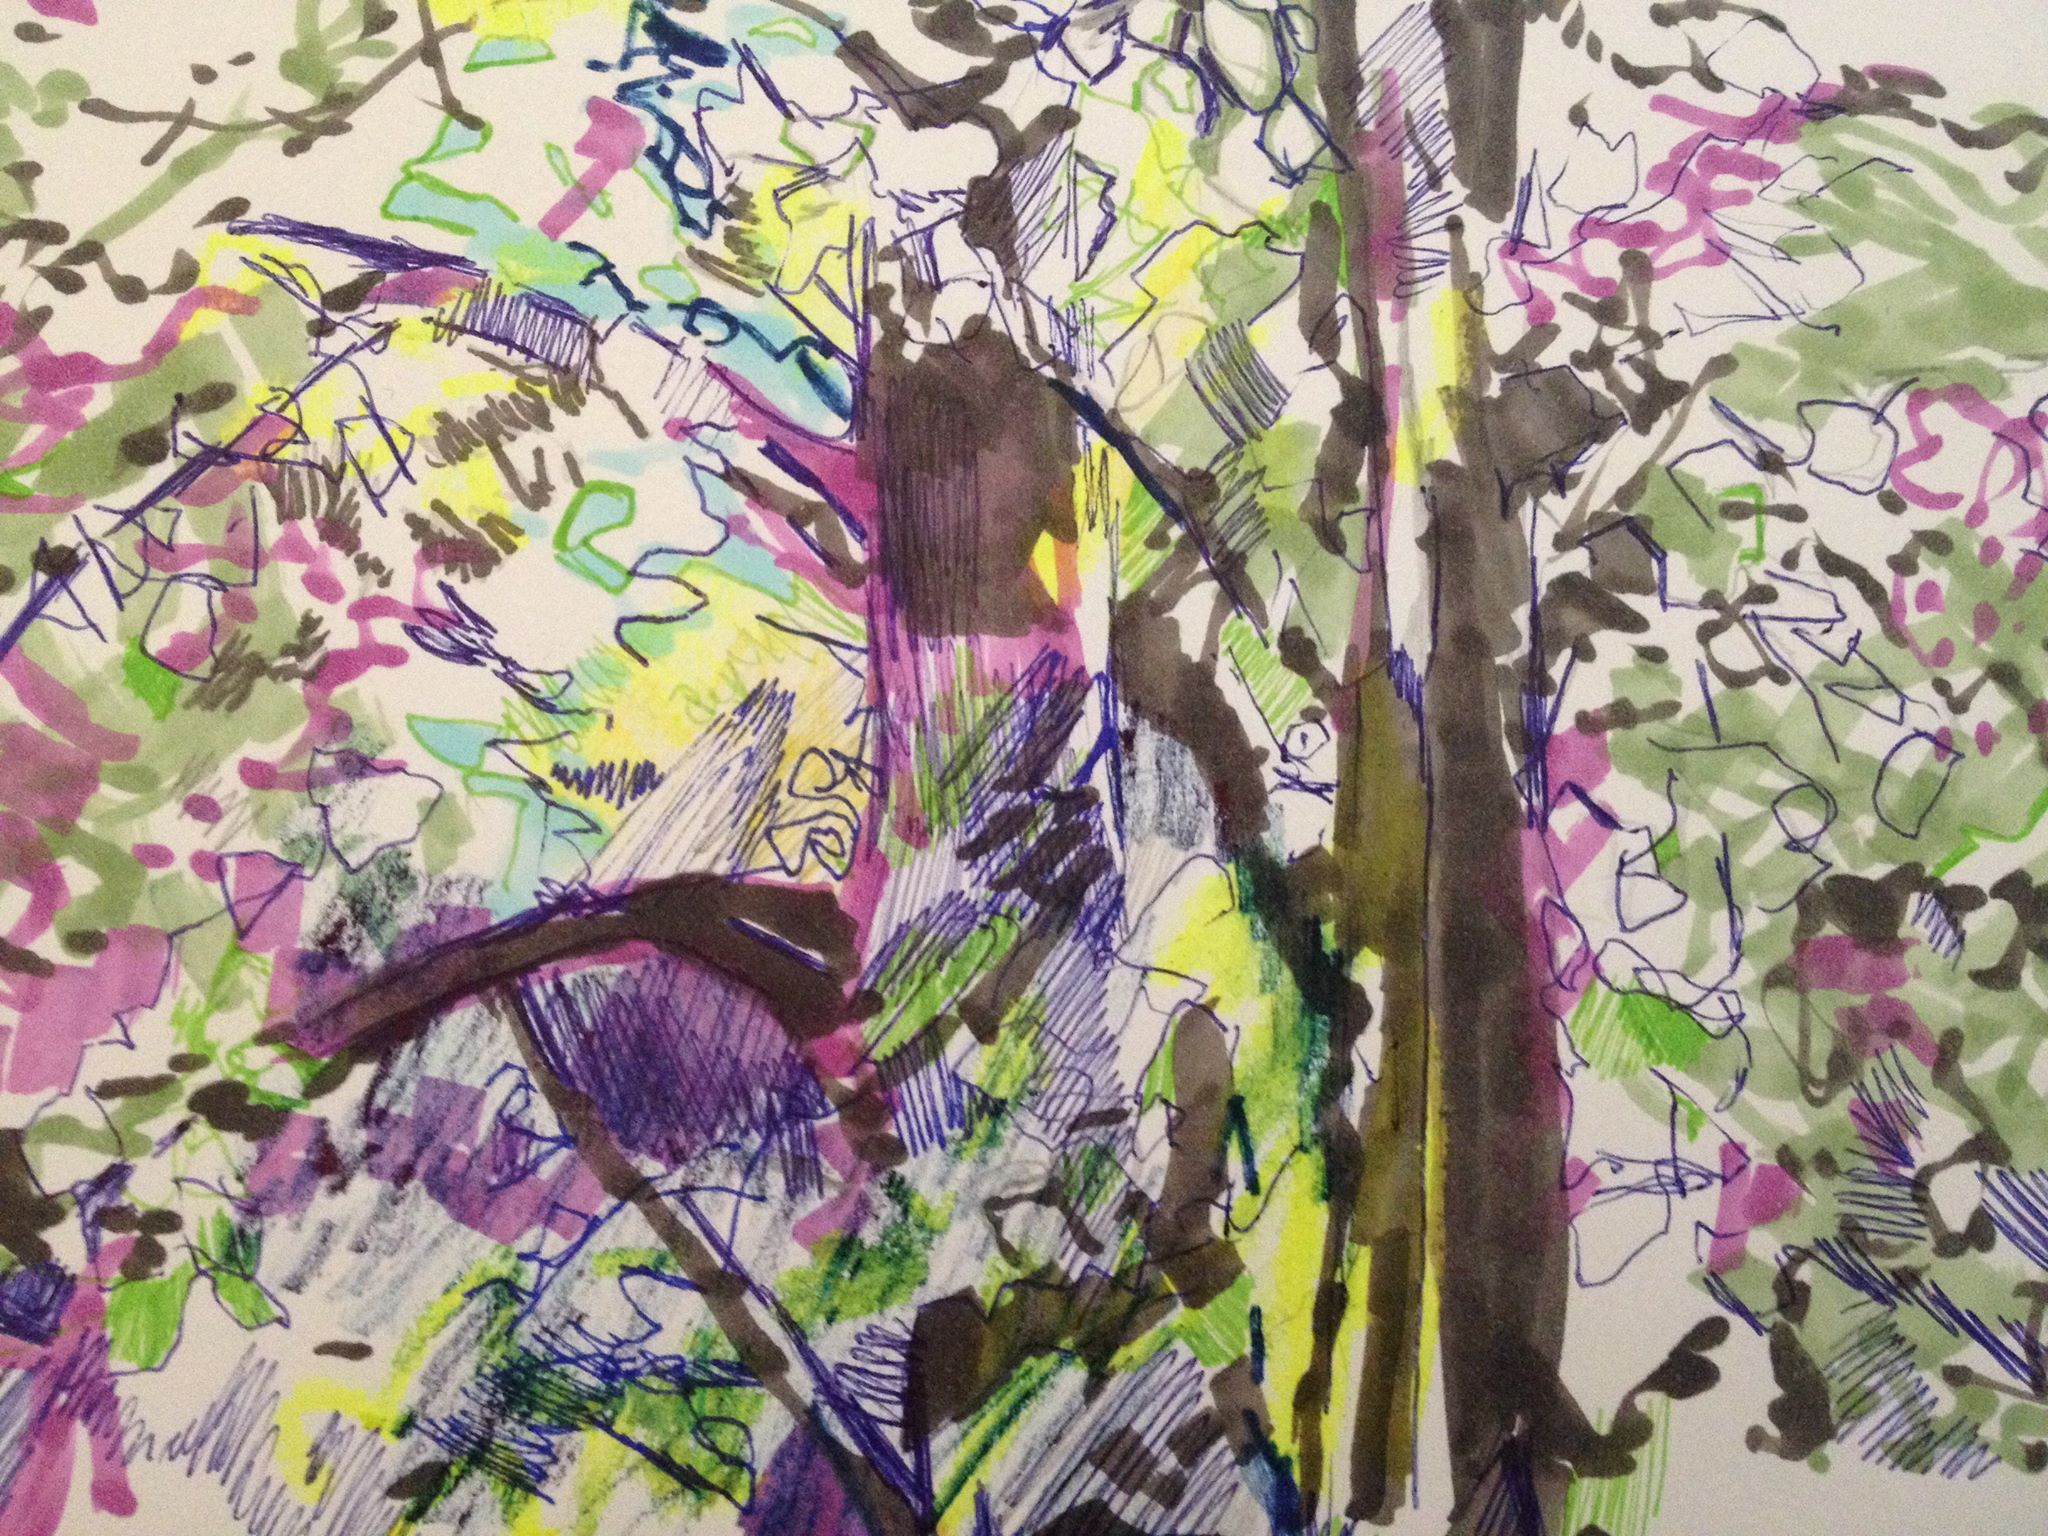 Trees drawing in the light Oct 2015